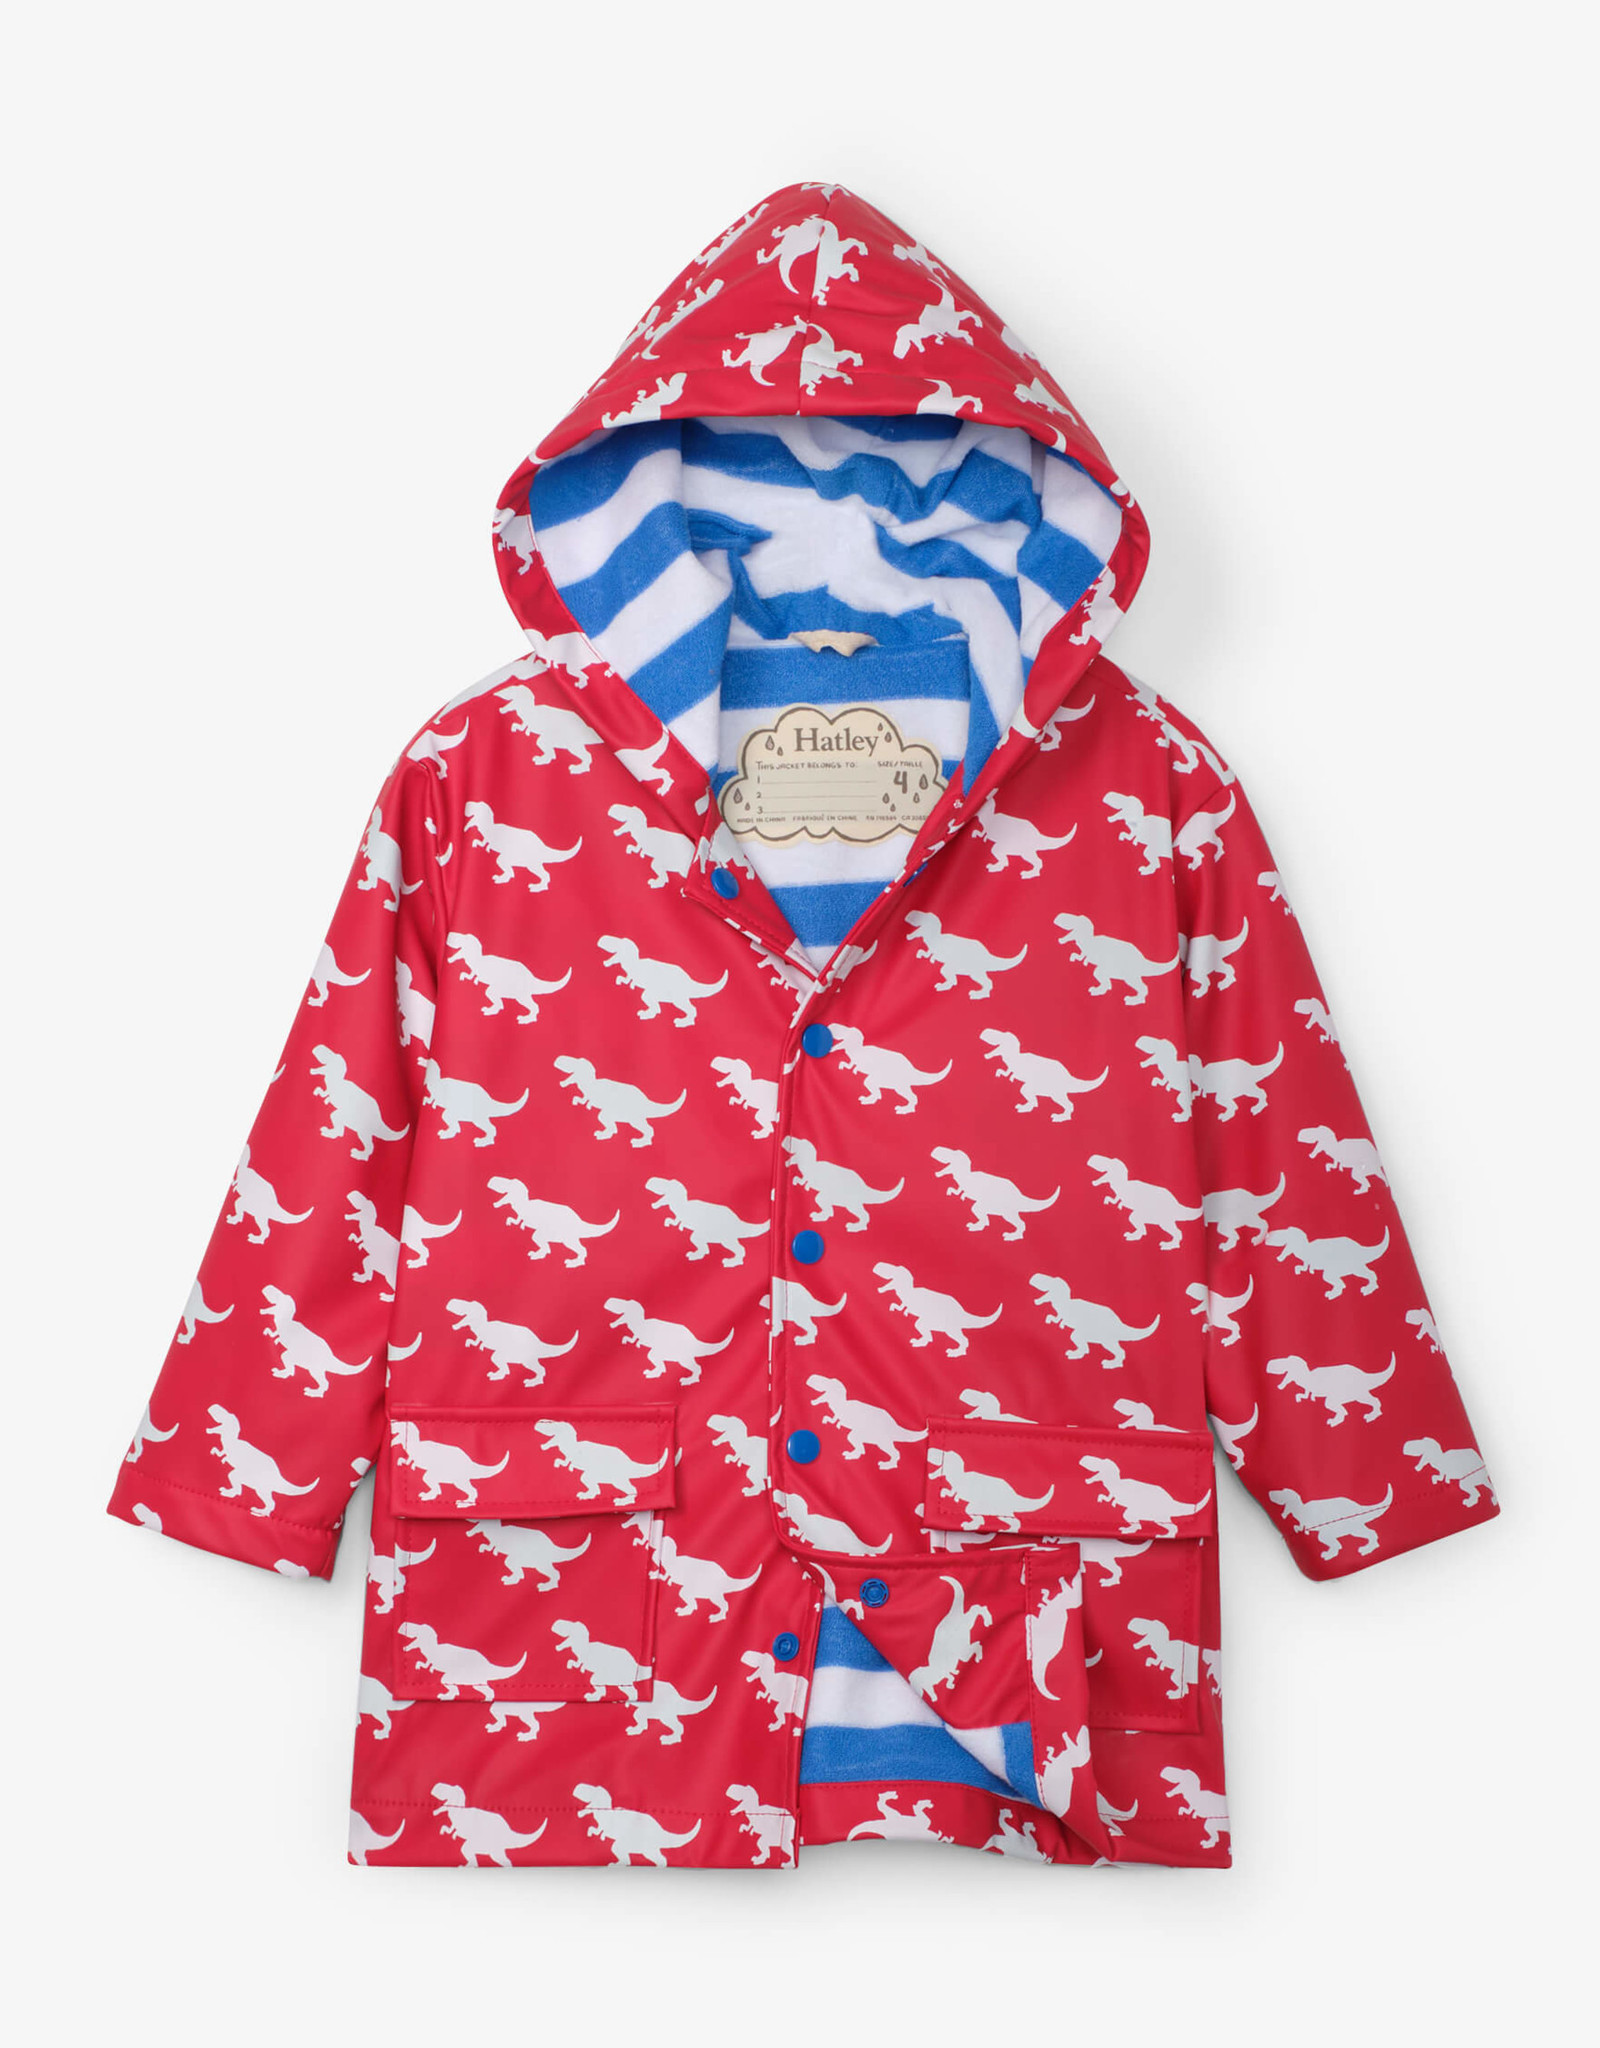 hatley T-Rex silhouettes Color Changing Raincoat